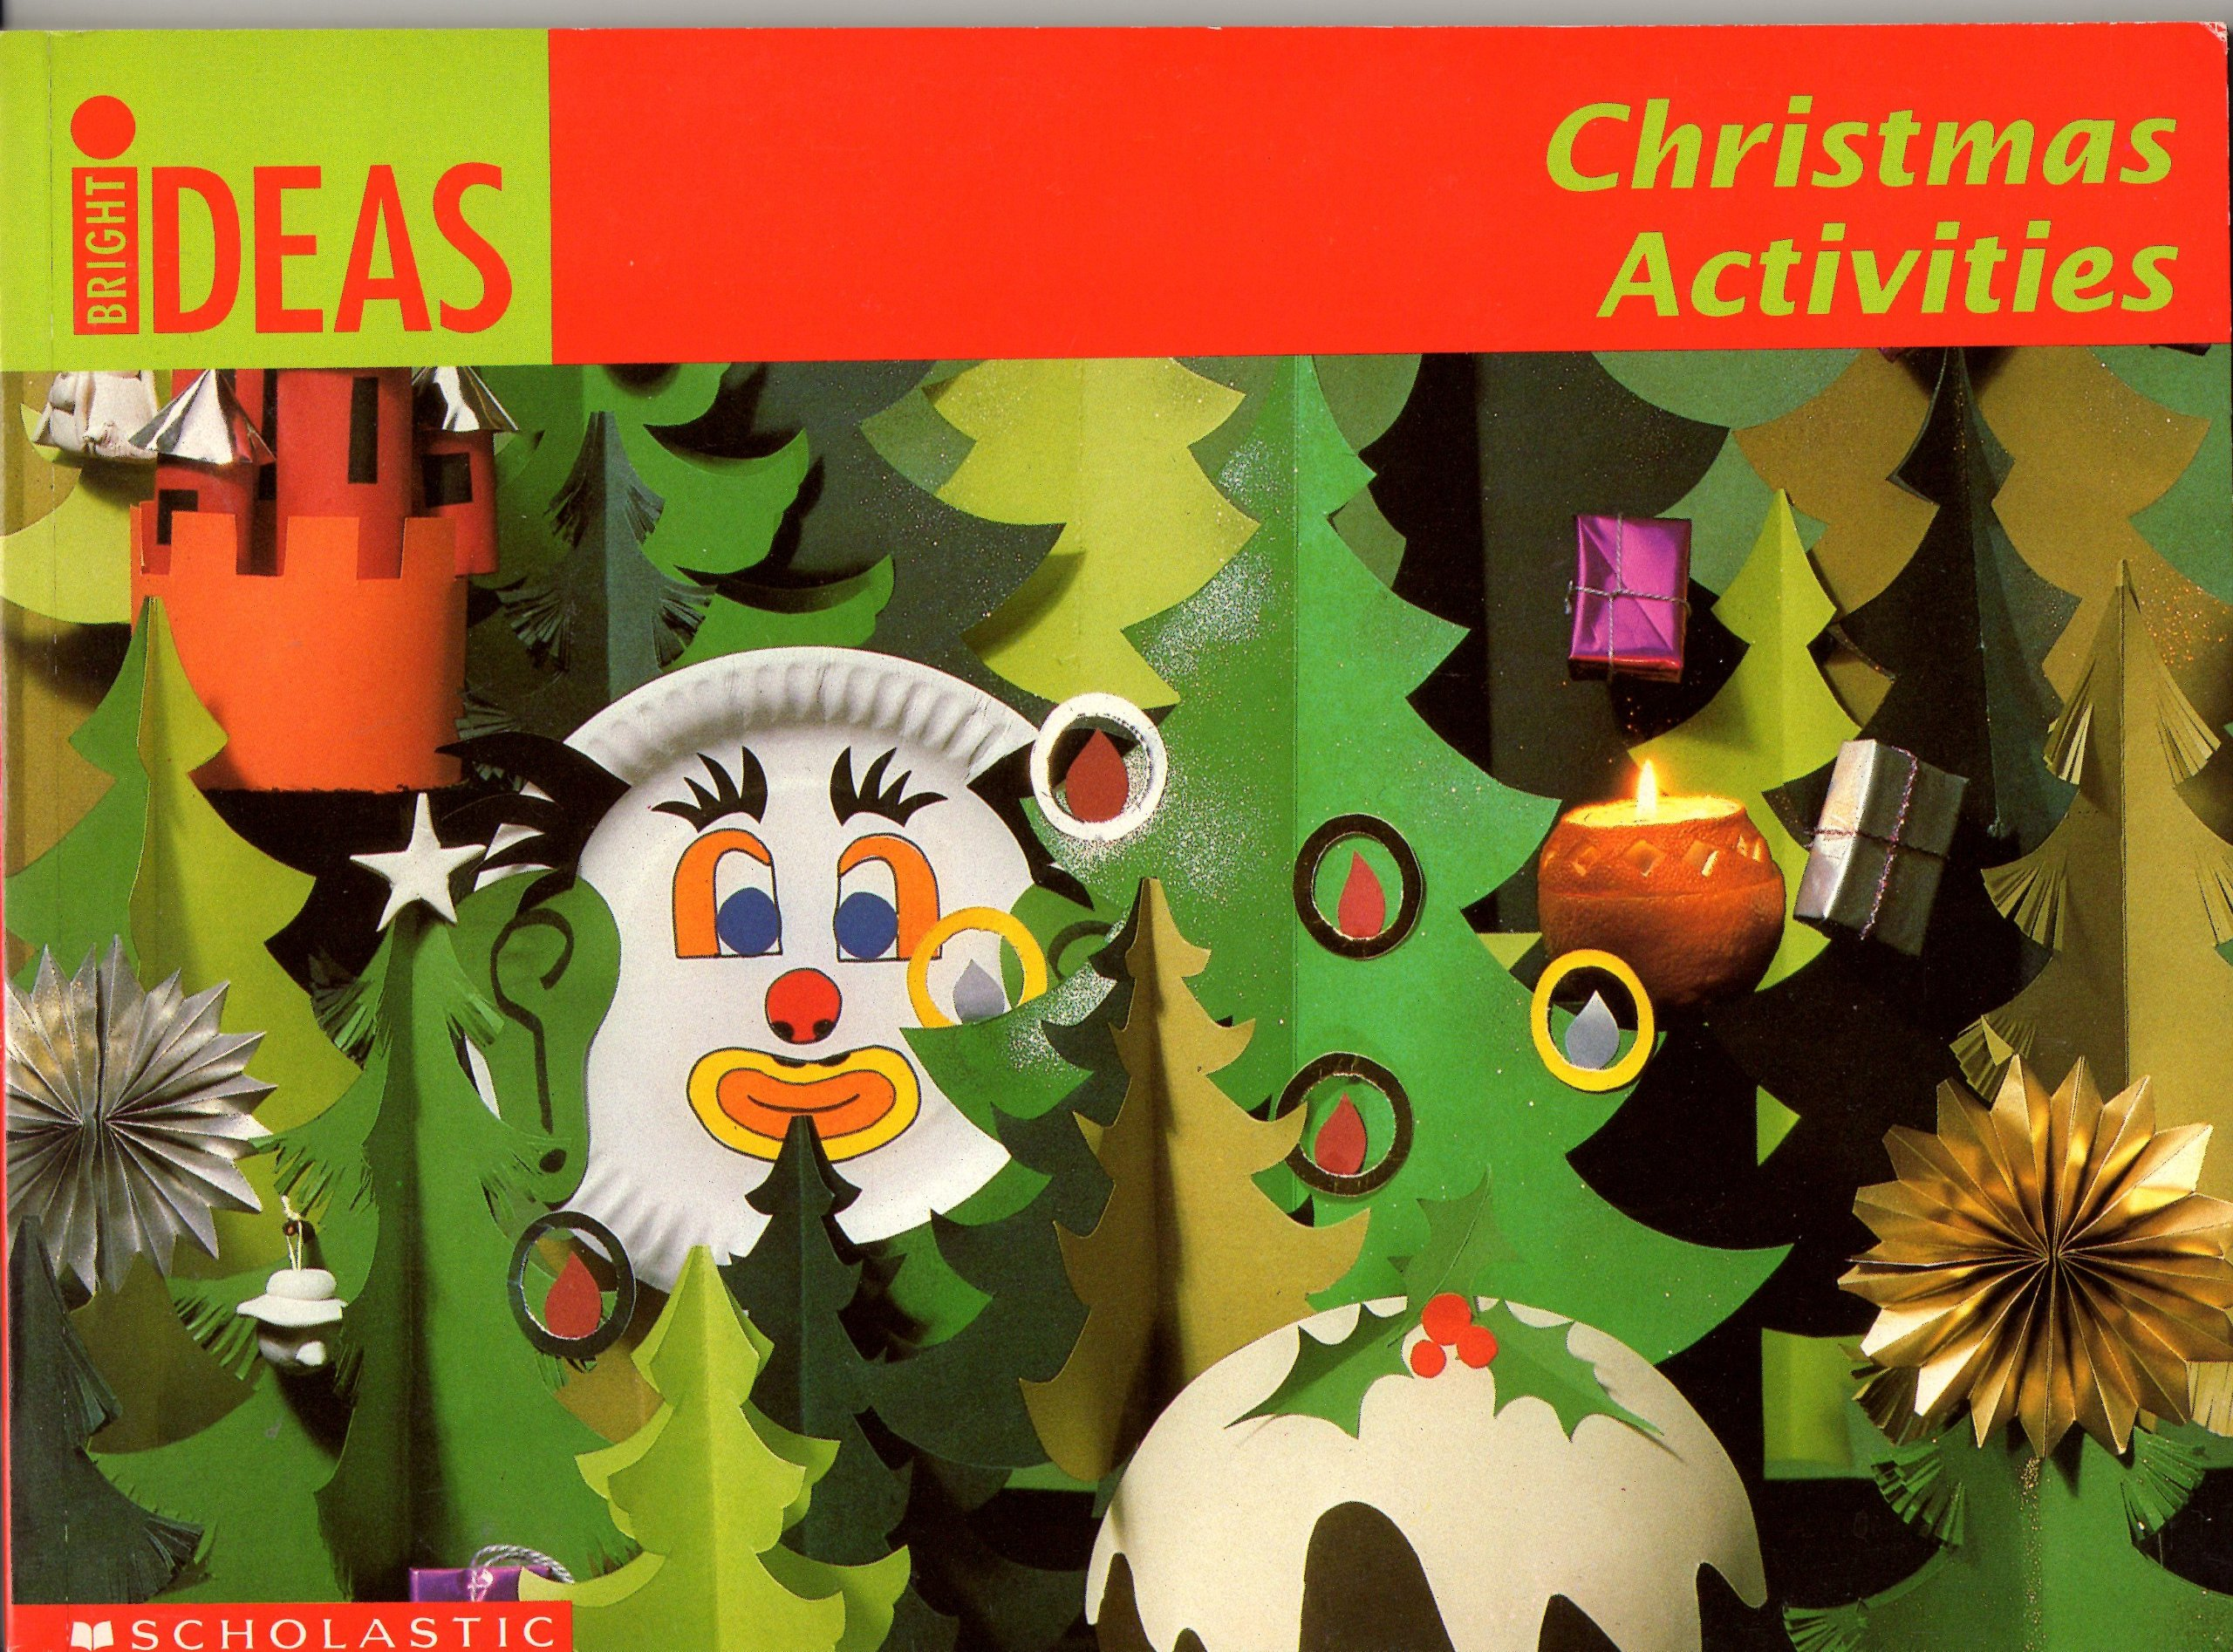 Christmas Activities Bright Ideas Amazon Co Uk Smart Mary Saunderson C Books